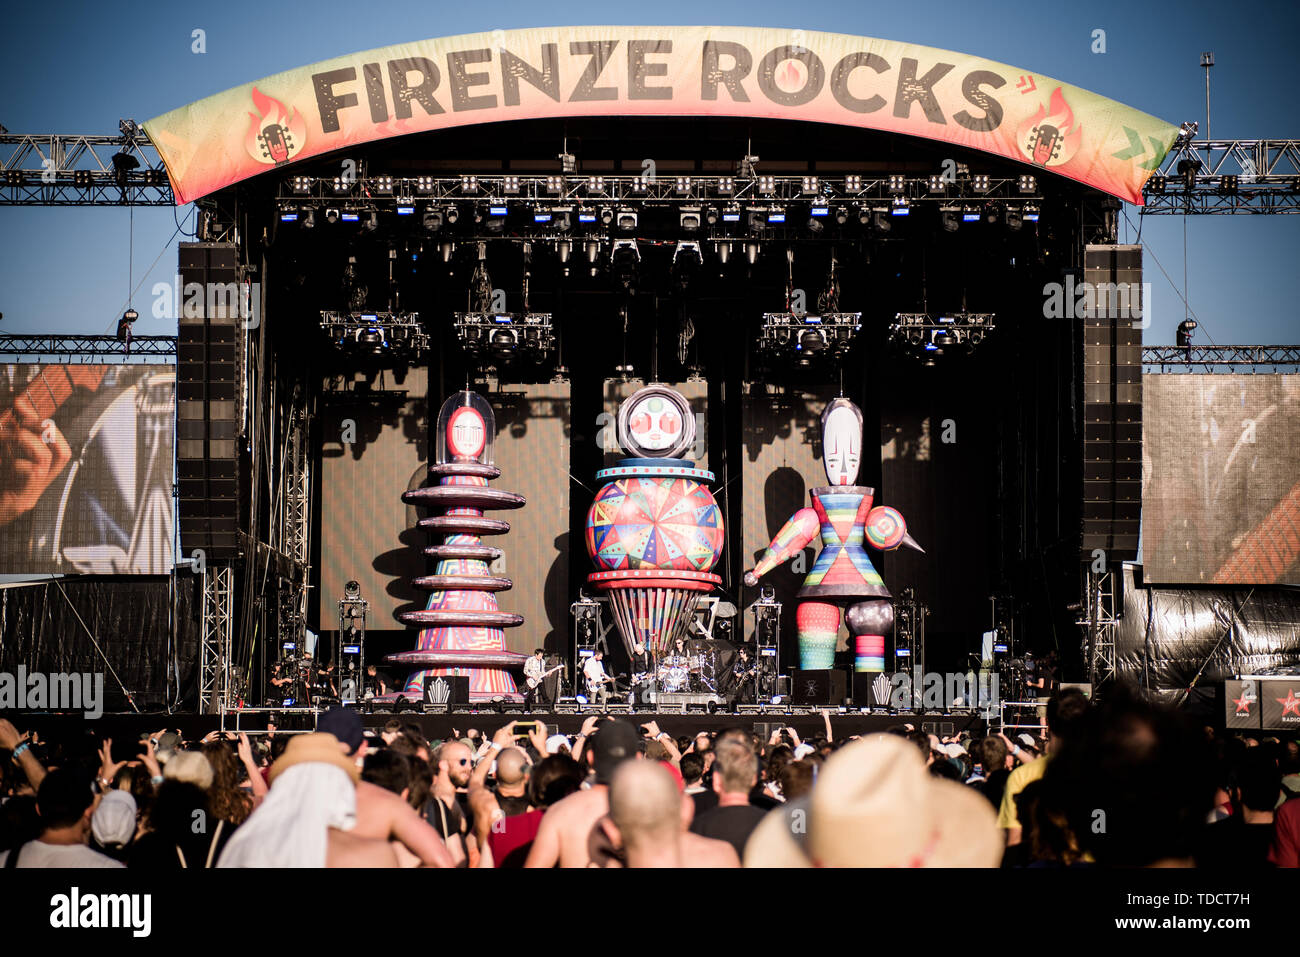 Florence,  Italy. 13th June, 2019. The American rock band Smashing Pumpkins, performing live on stage at the Firenze Rocks festival 2019 in Florence, Italy, opening for Tool Credit: Alessandro Bosio/Pacific Press/Alamy Live News - Stock Image